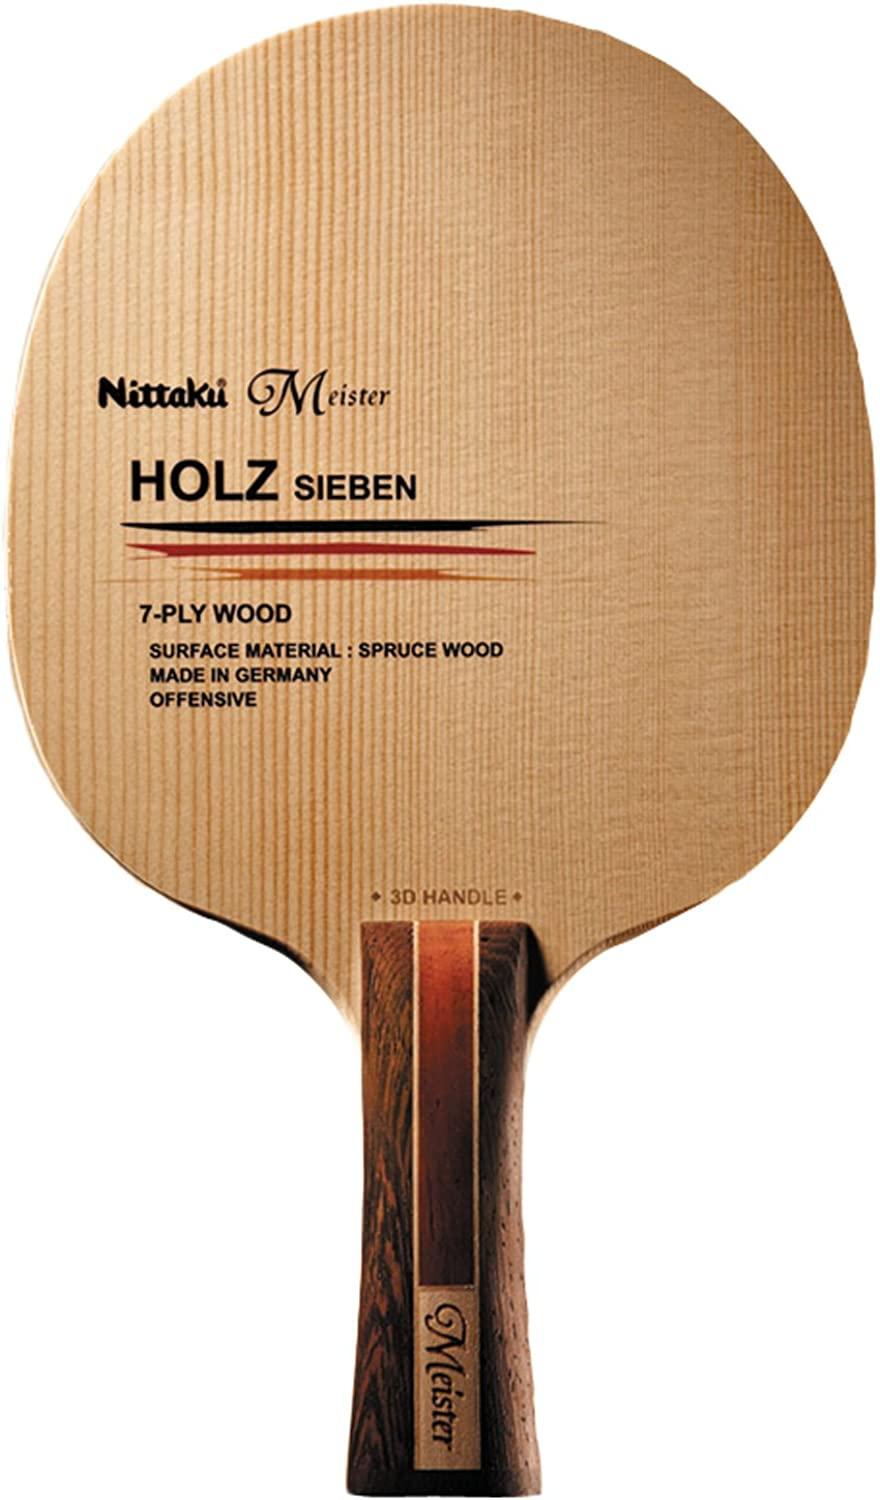 Nittaku (Nittaku) Table Tennis racket Horutsushiben 3D FL NE6113